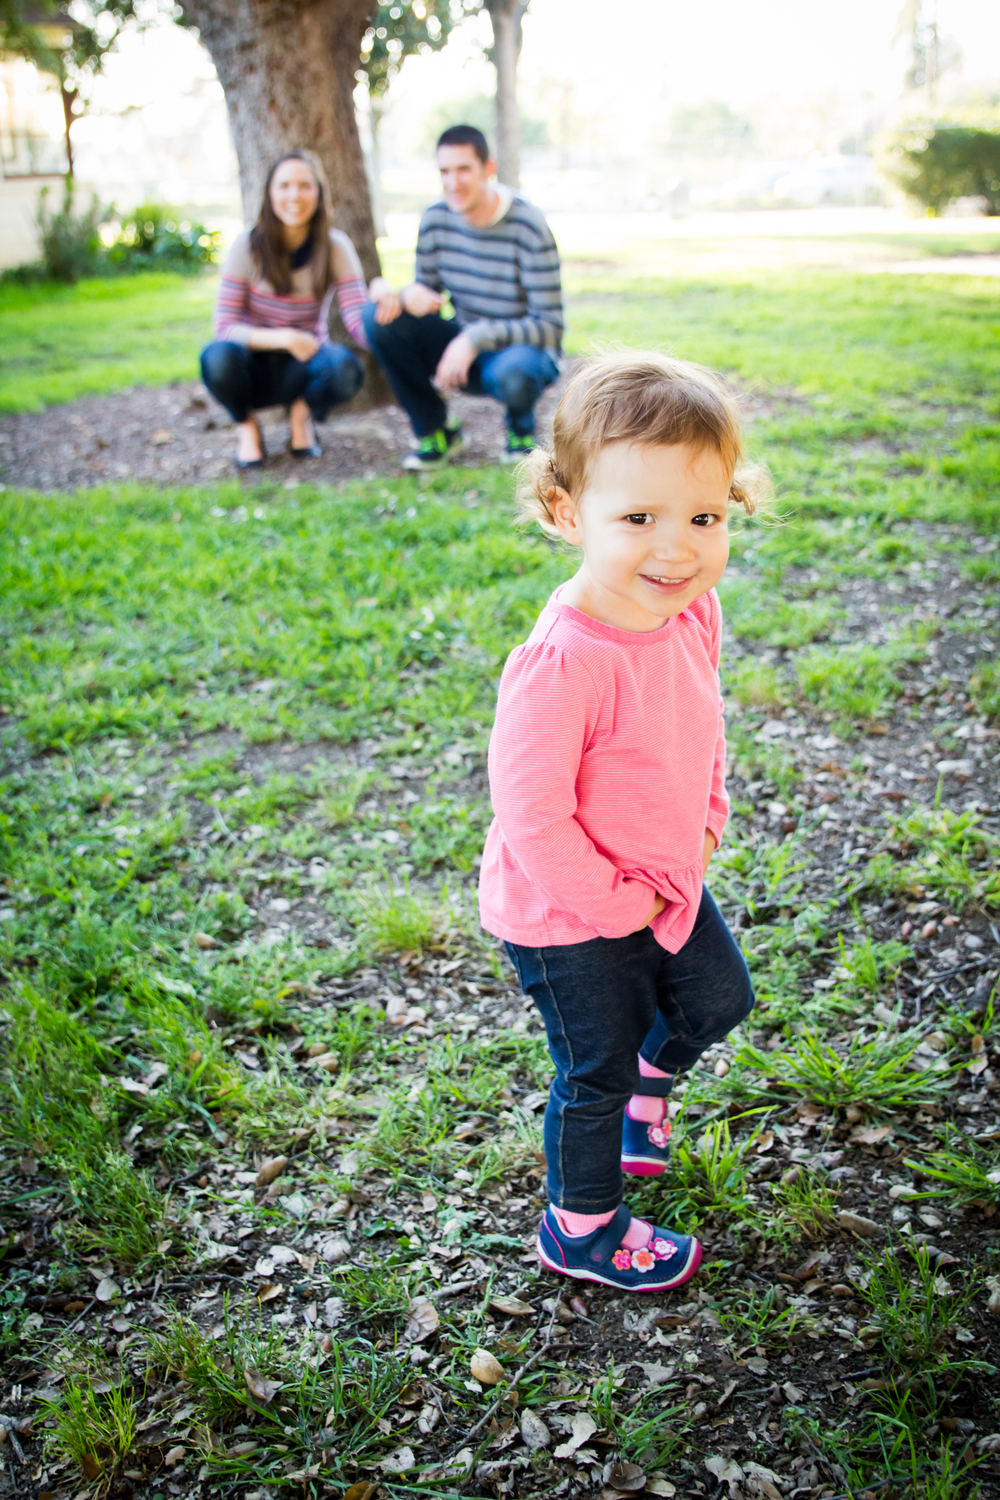 """Stephanie was so easy to work with! Our little family of three had never done a formal photo shoot before, so I had no clue how to stand, coordinate our clothes and make our active 18 month old look at the camera! Thankfully, Stephanie sent us a Pinterest board with lots of different poses, guides for what to wear and suggestions to keep our girl still for a few seconds at a time.   The actual photo shoot was a breeze. Stephanie was able to work quickly and get some fantastic shots before my husband's allergies got the best of him. :) She captured some great shots of our family and our girl...  But overall, Stephanie/PP was really helpful in preparing us for our photo shoot, being flexible and open with what we wanted to try during the photo shoot and provided a fantastic result that we'll cherish for years to come.""      -Jill R."